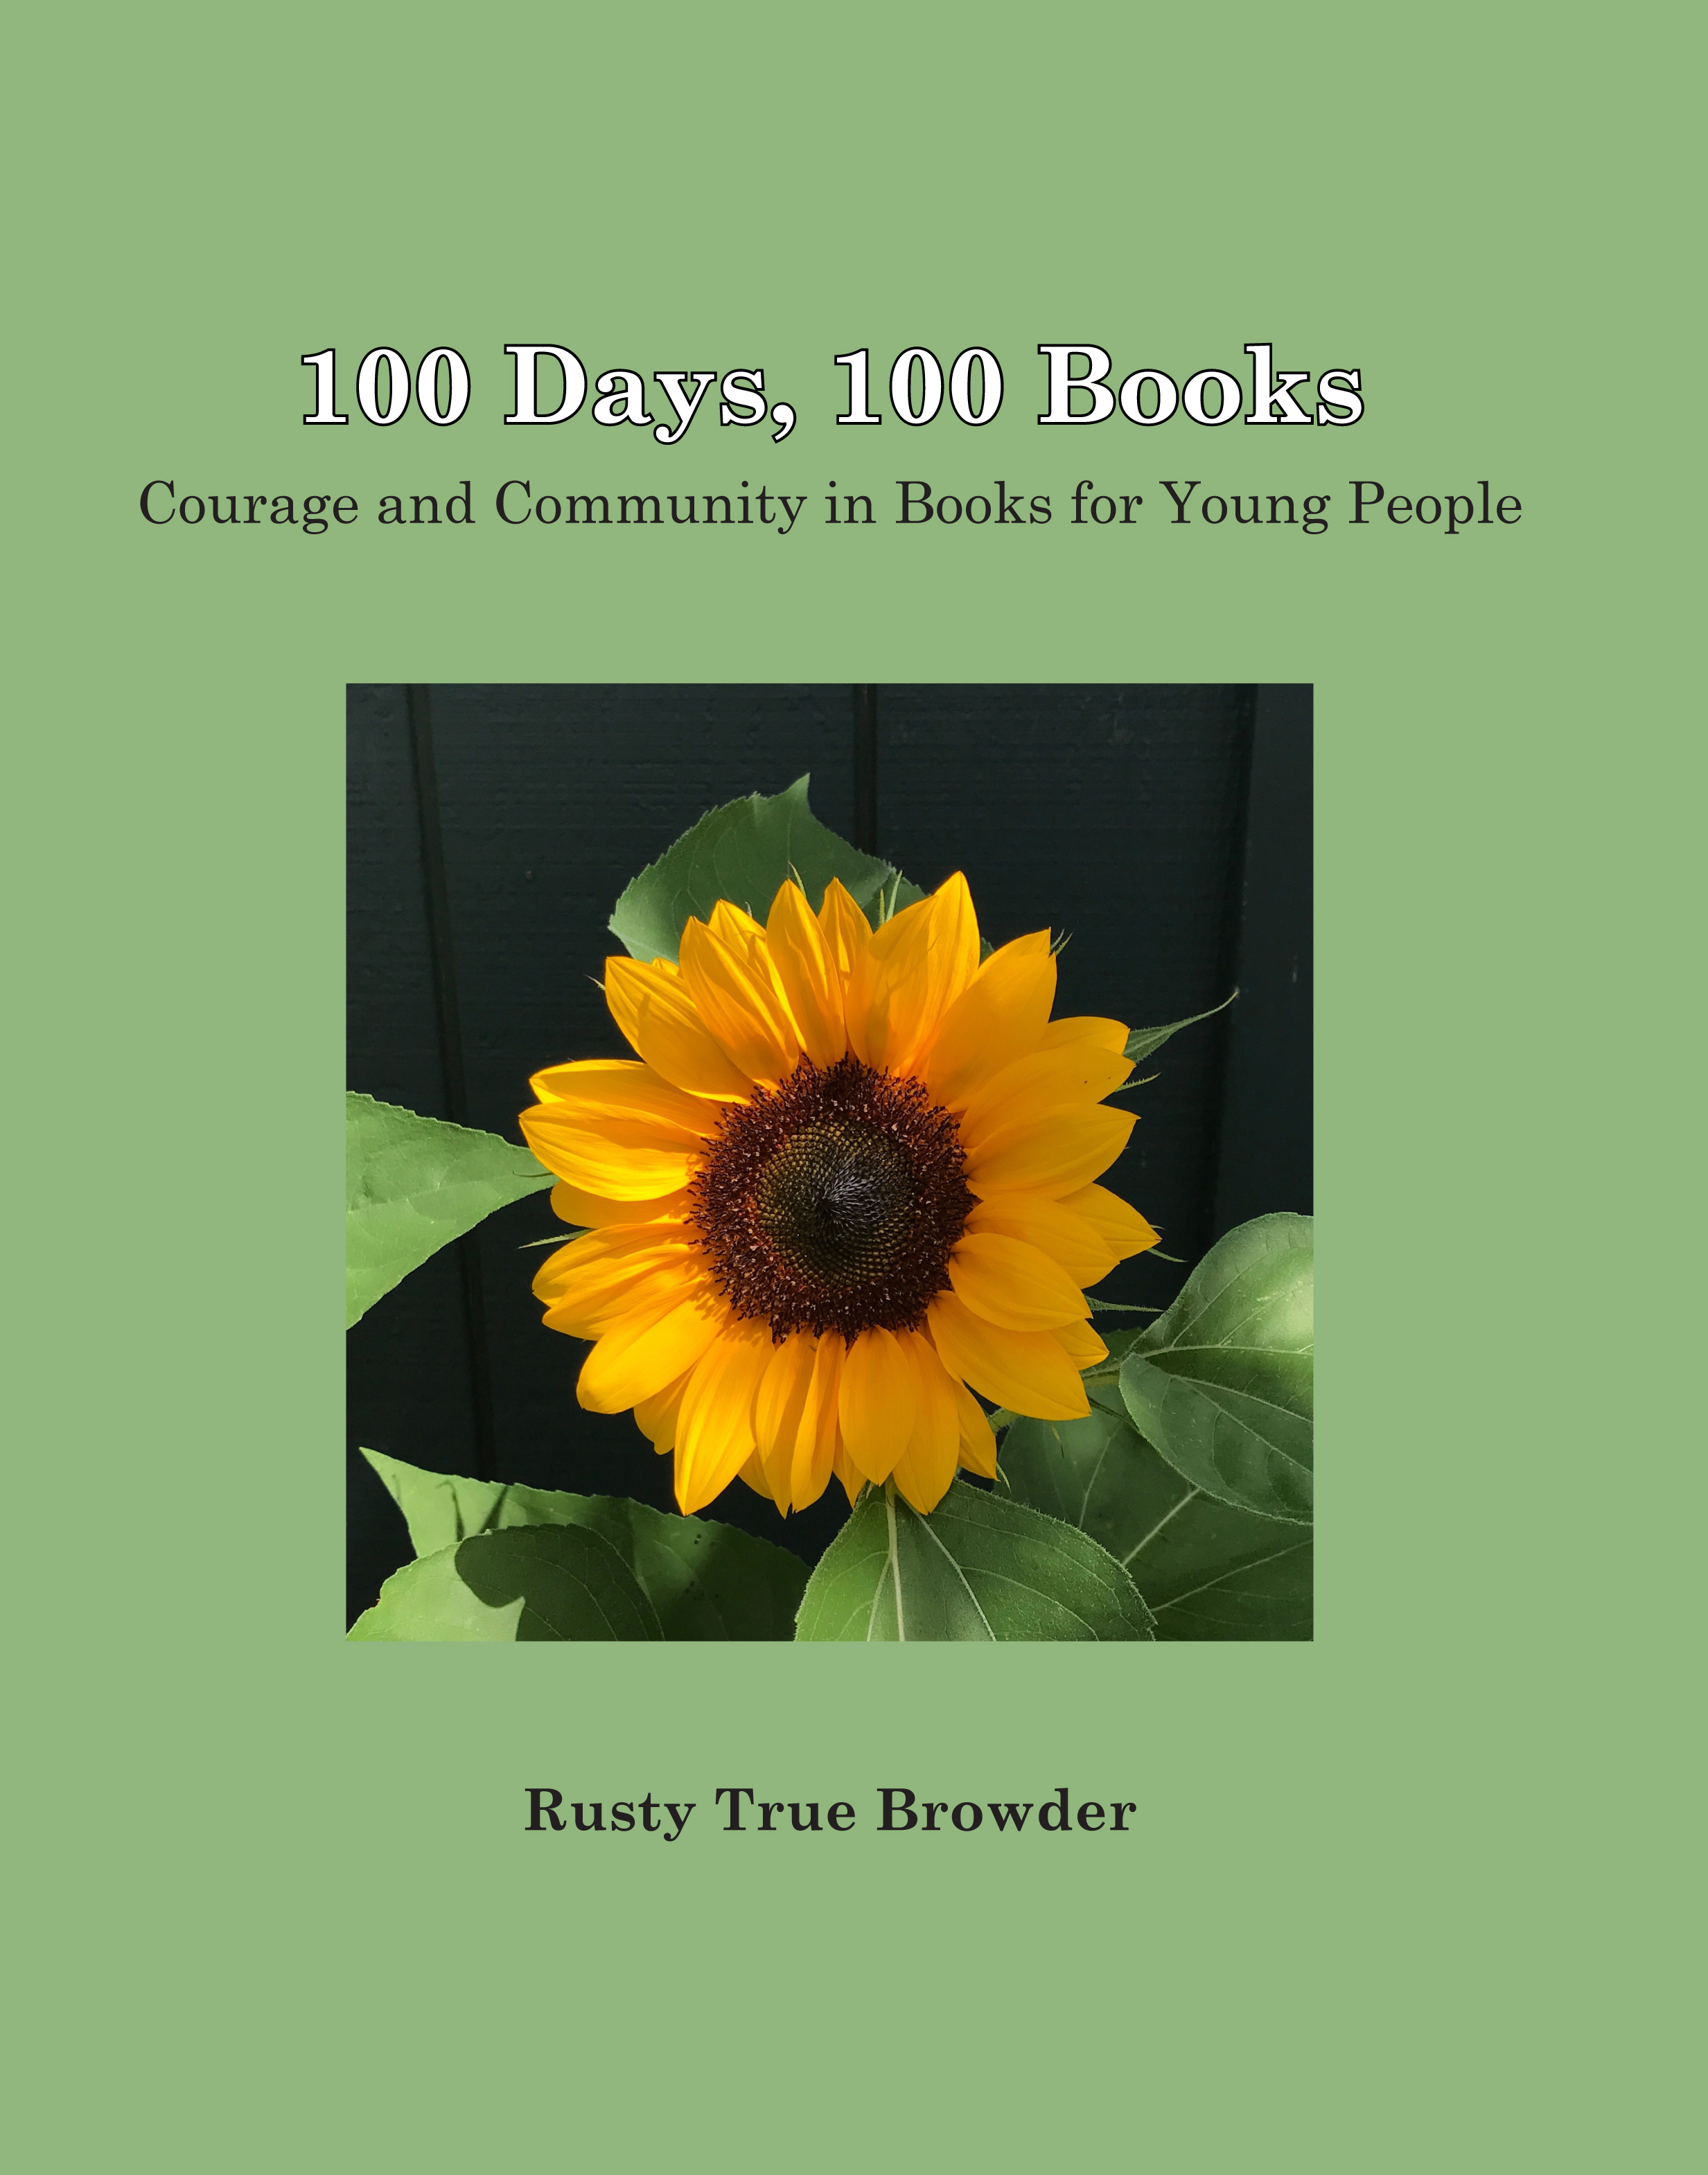 100 Days, 100 Books